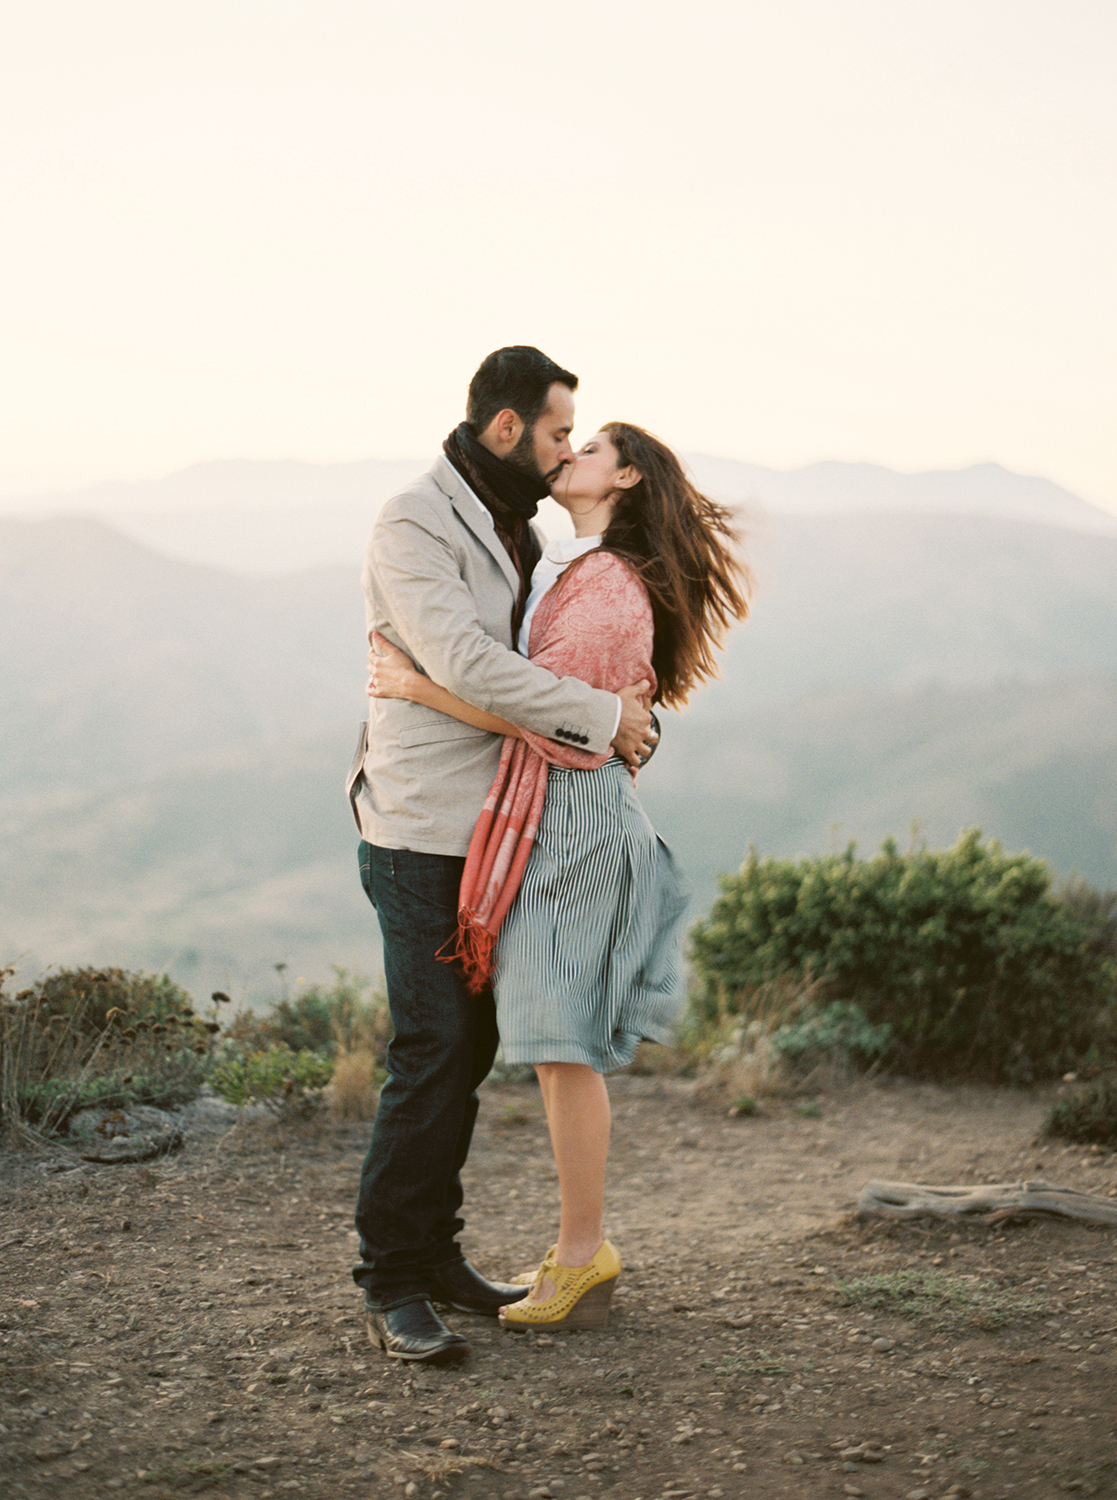 marin-headlands-engagement-session-luis-cecilia-41.html